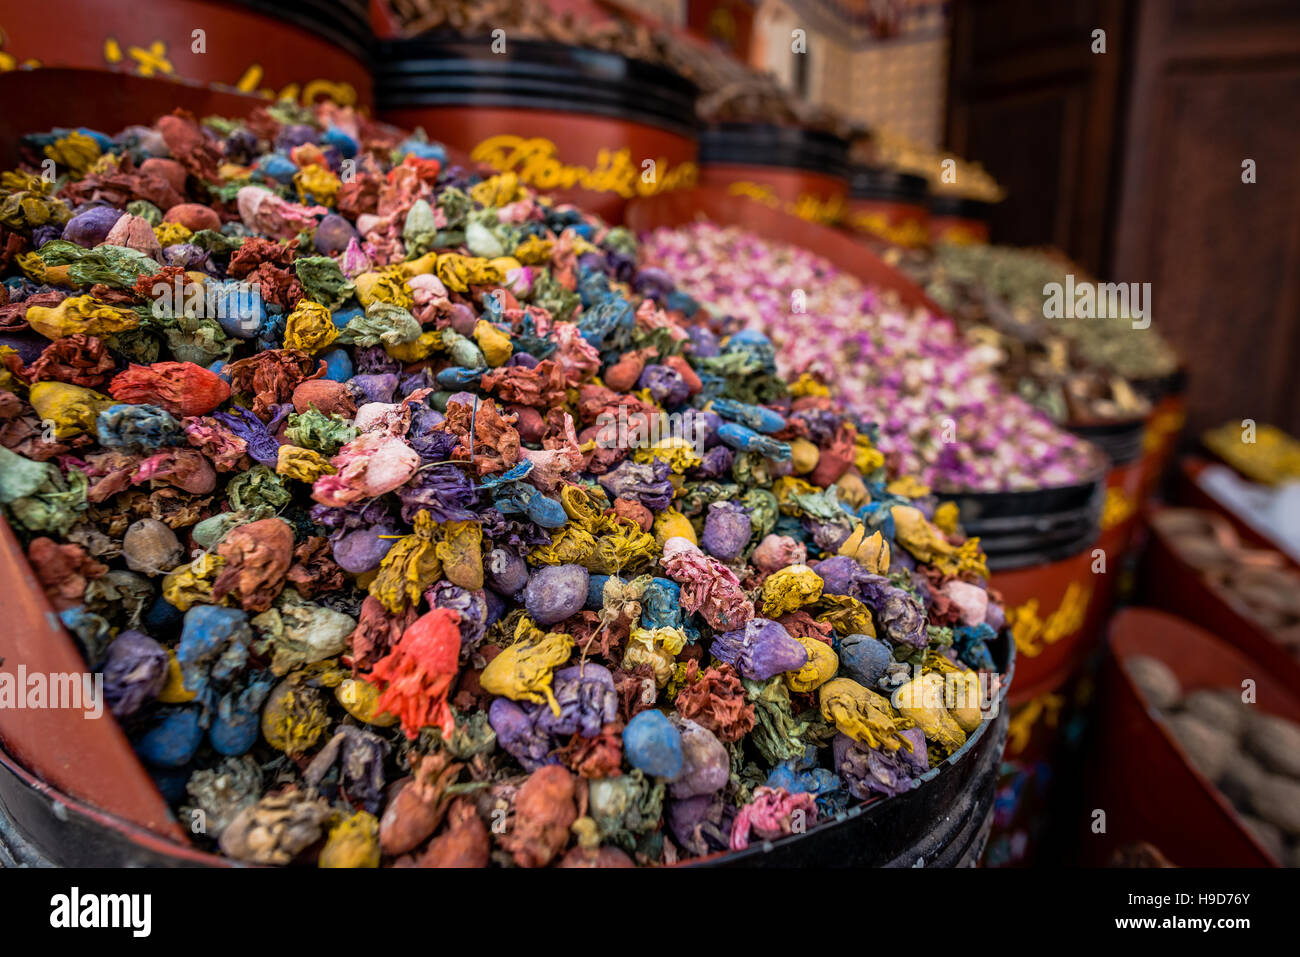 Colorful dried cactus flowers, herbs and spices in traditional Moroccan market in Marrakesh. Stock Photo